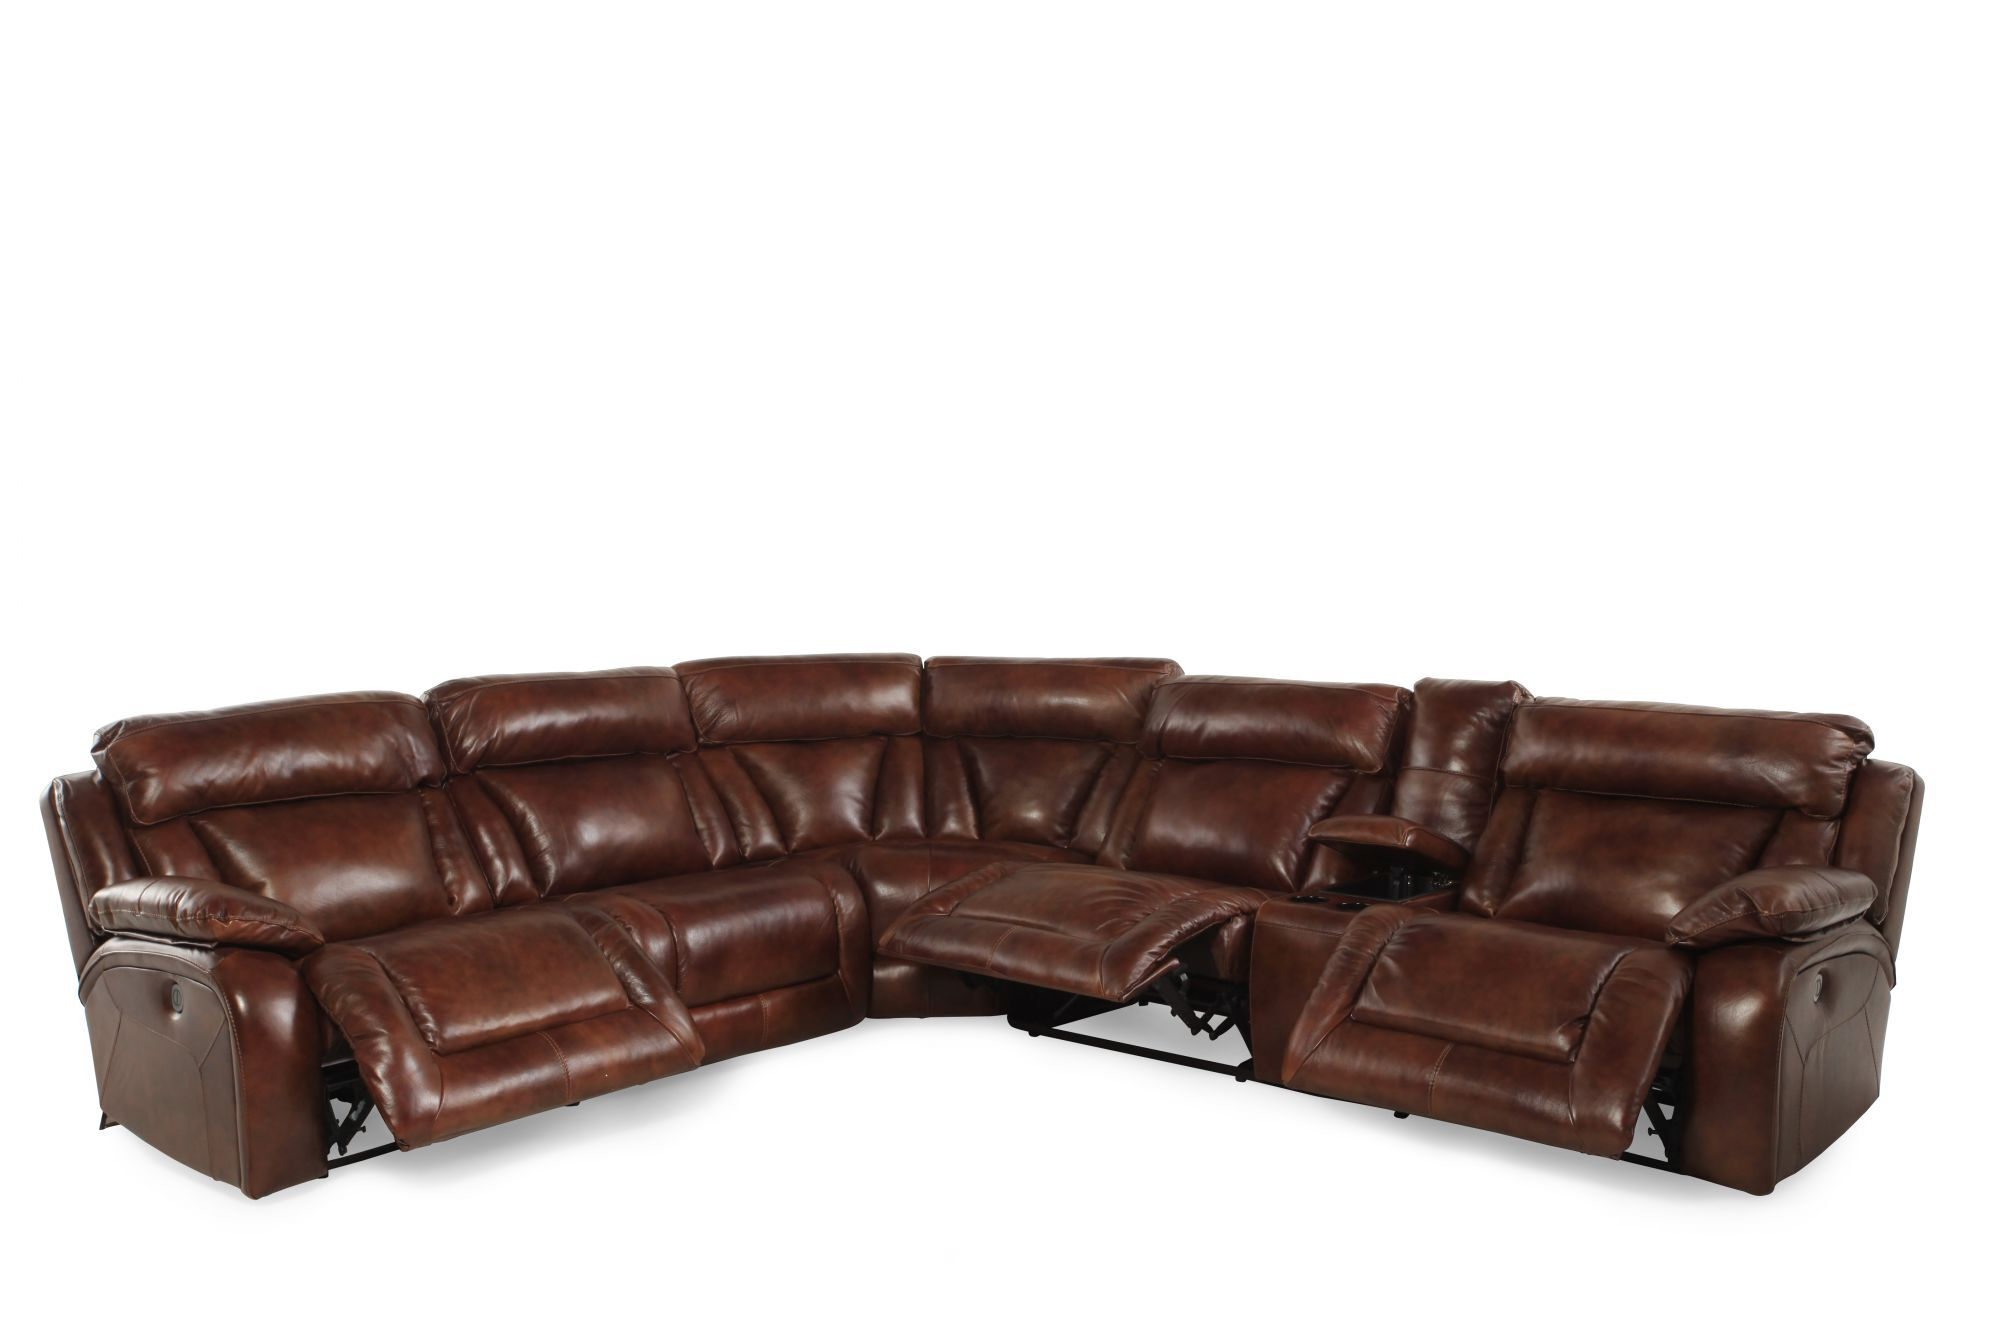 Leather Reclining Sectional In Deep Saddle Brown Mathis Brothers